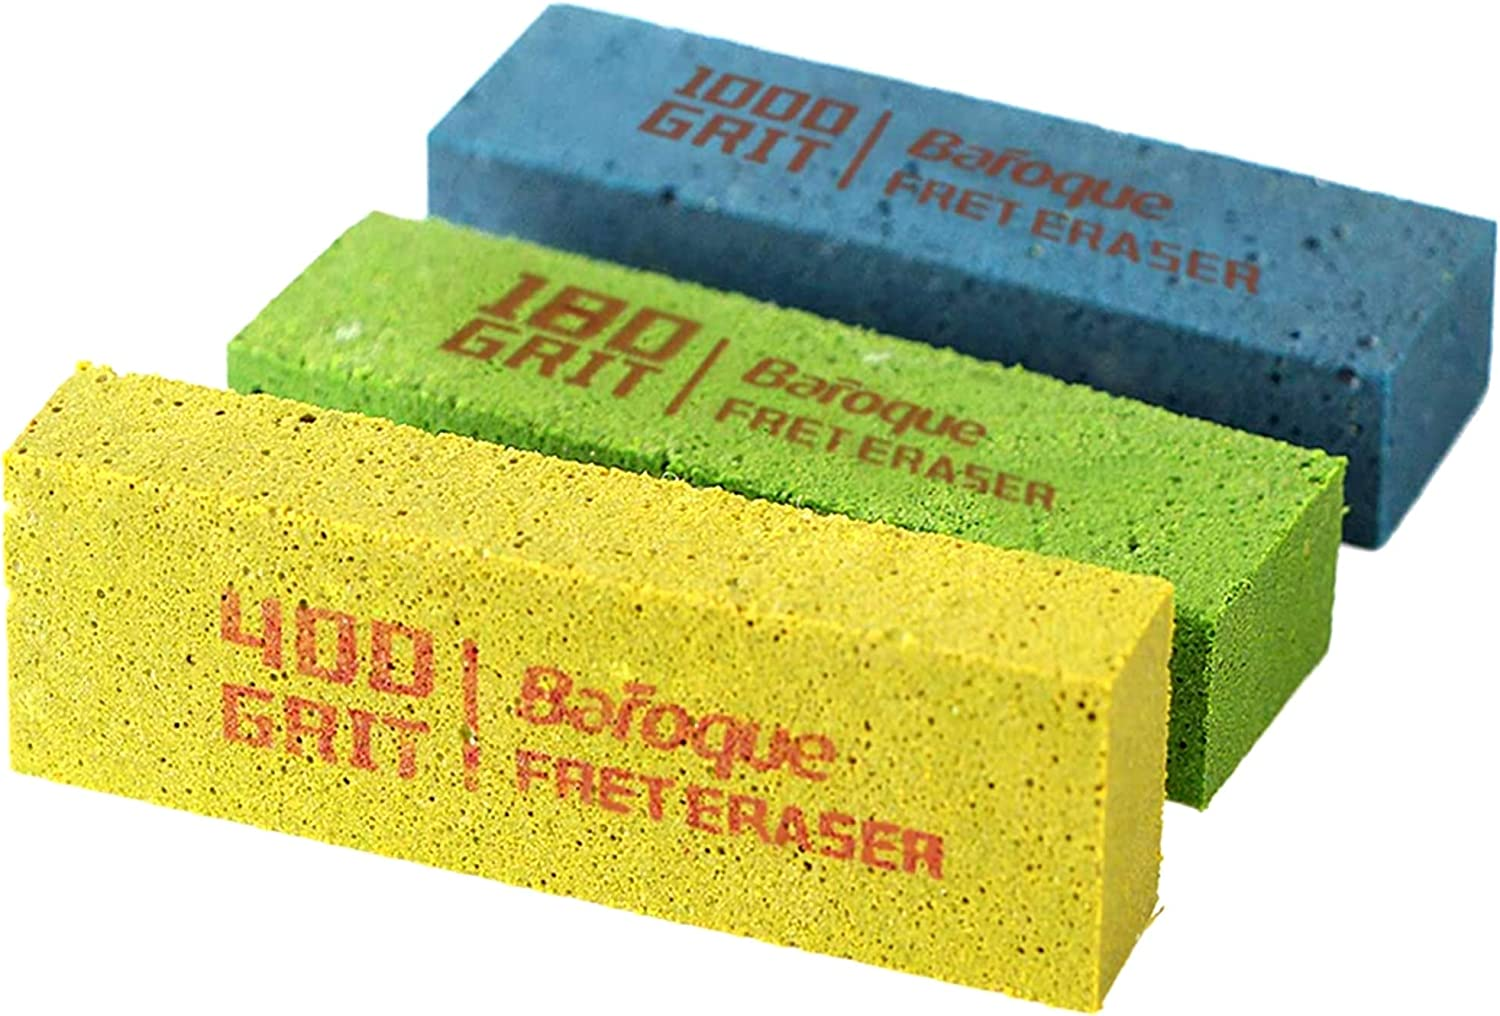 Baroque Fret Erasers 180 400 Guitar Polishi Grits Courier shipping free shipping Max 87% OFF 1000